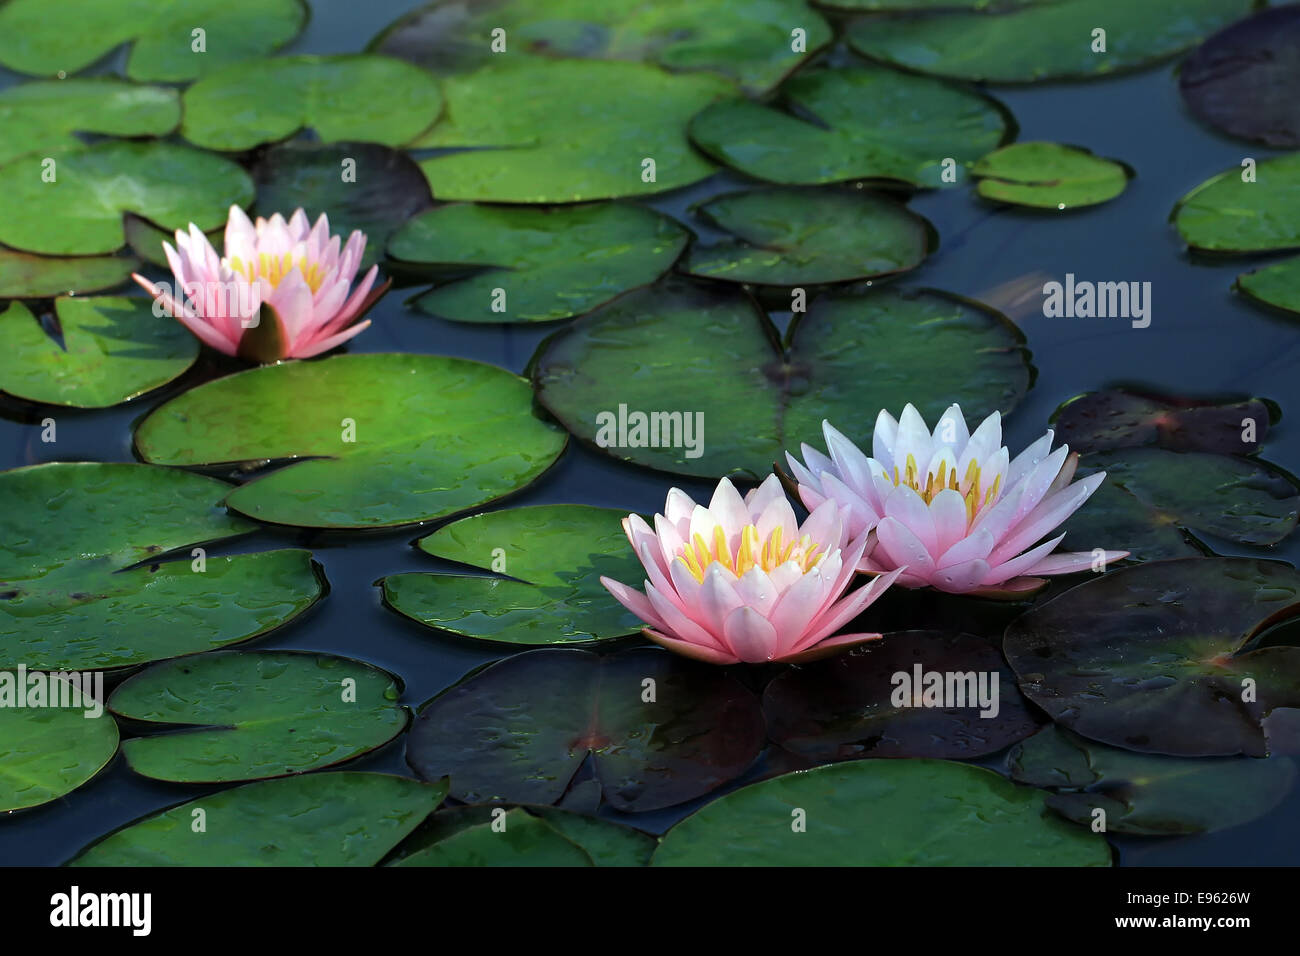 88 most beautiful lotus flower a water lotus in full bloom one of beautiful lotus flower in the pond izmirmasajfo